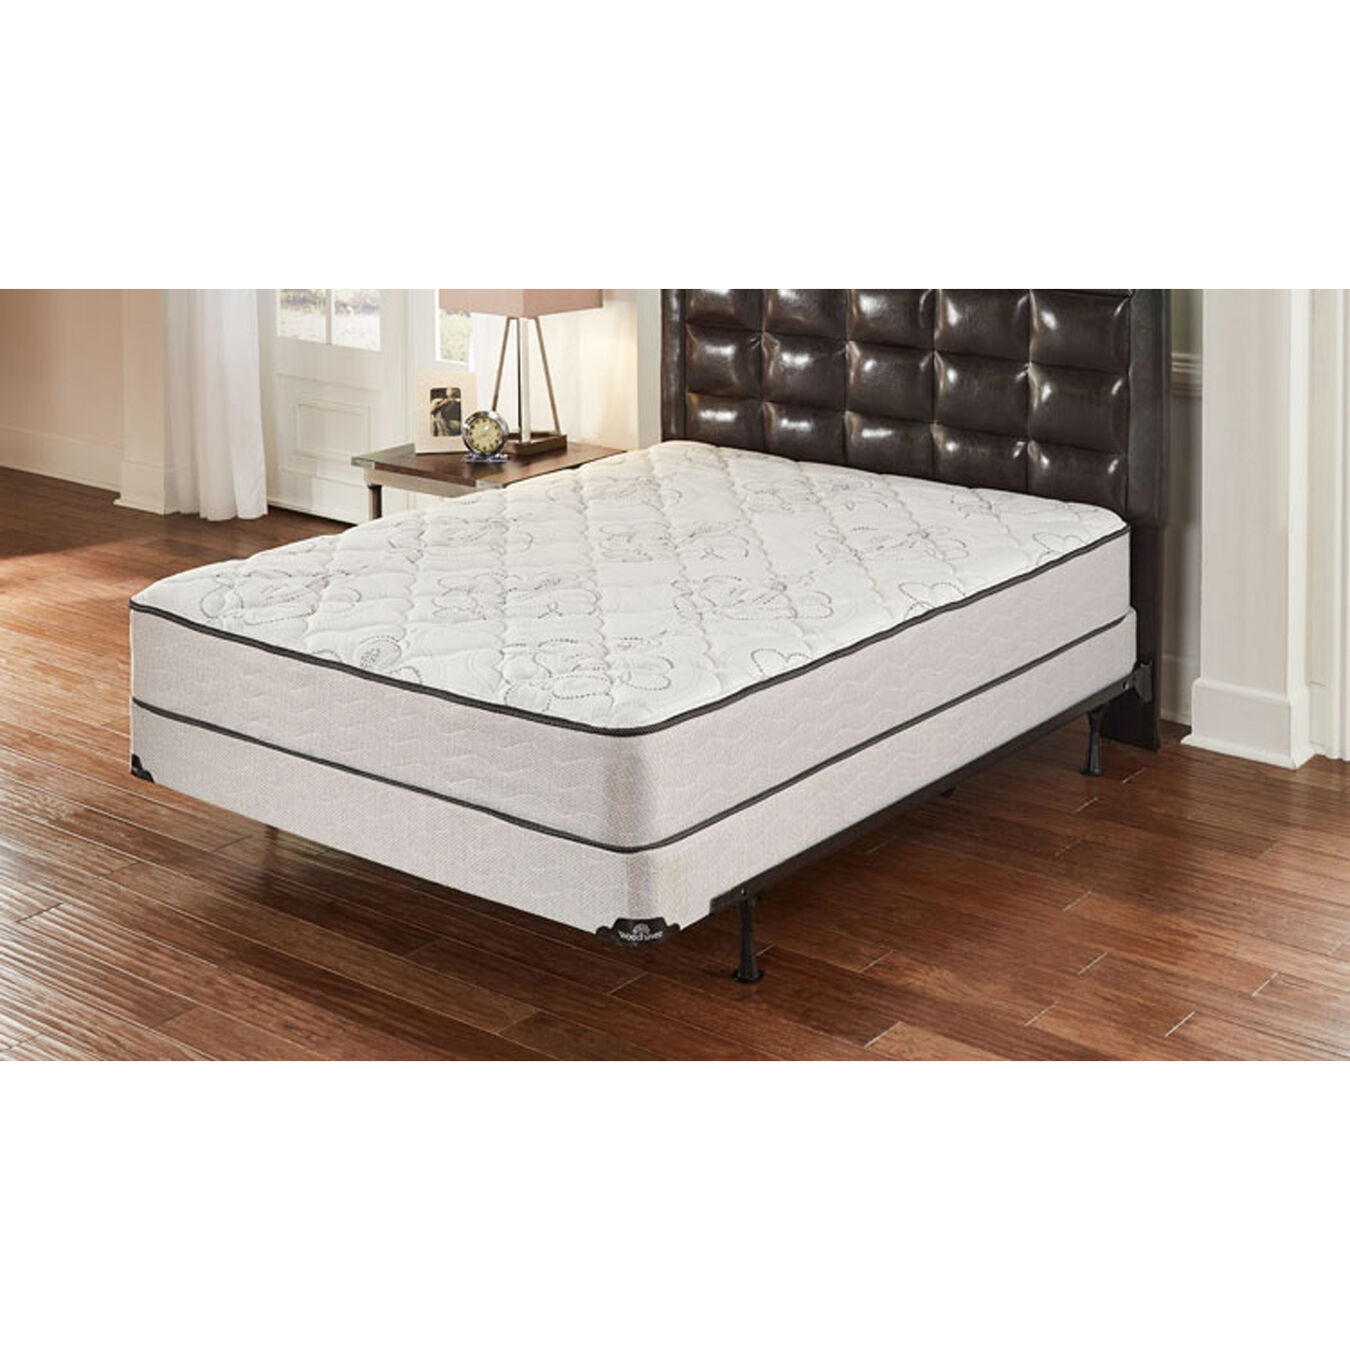 queen mattress bed. contemporary mattress queen mattress luxury tight top with protector and bed y